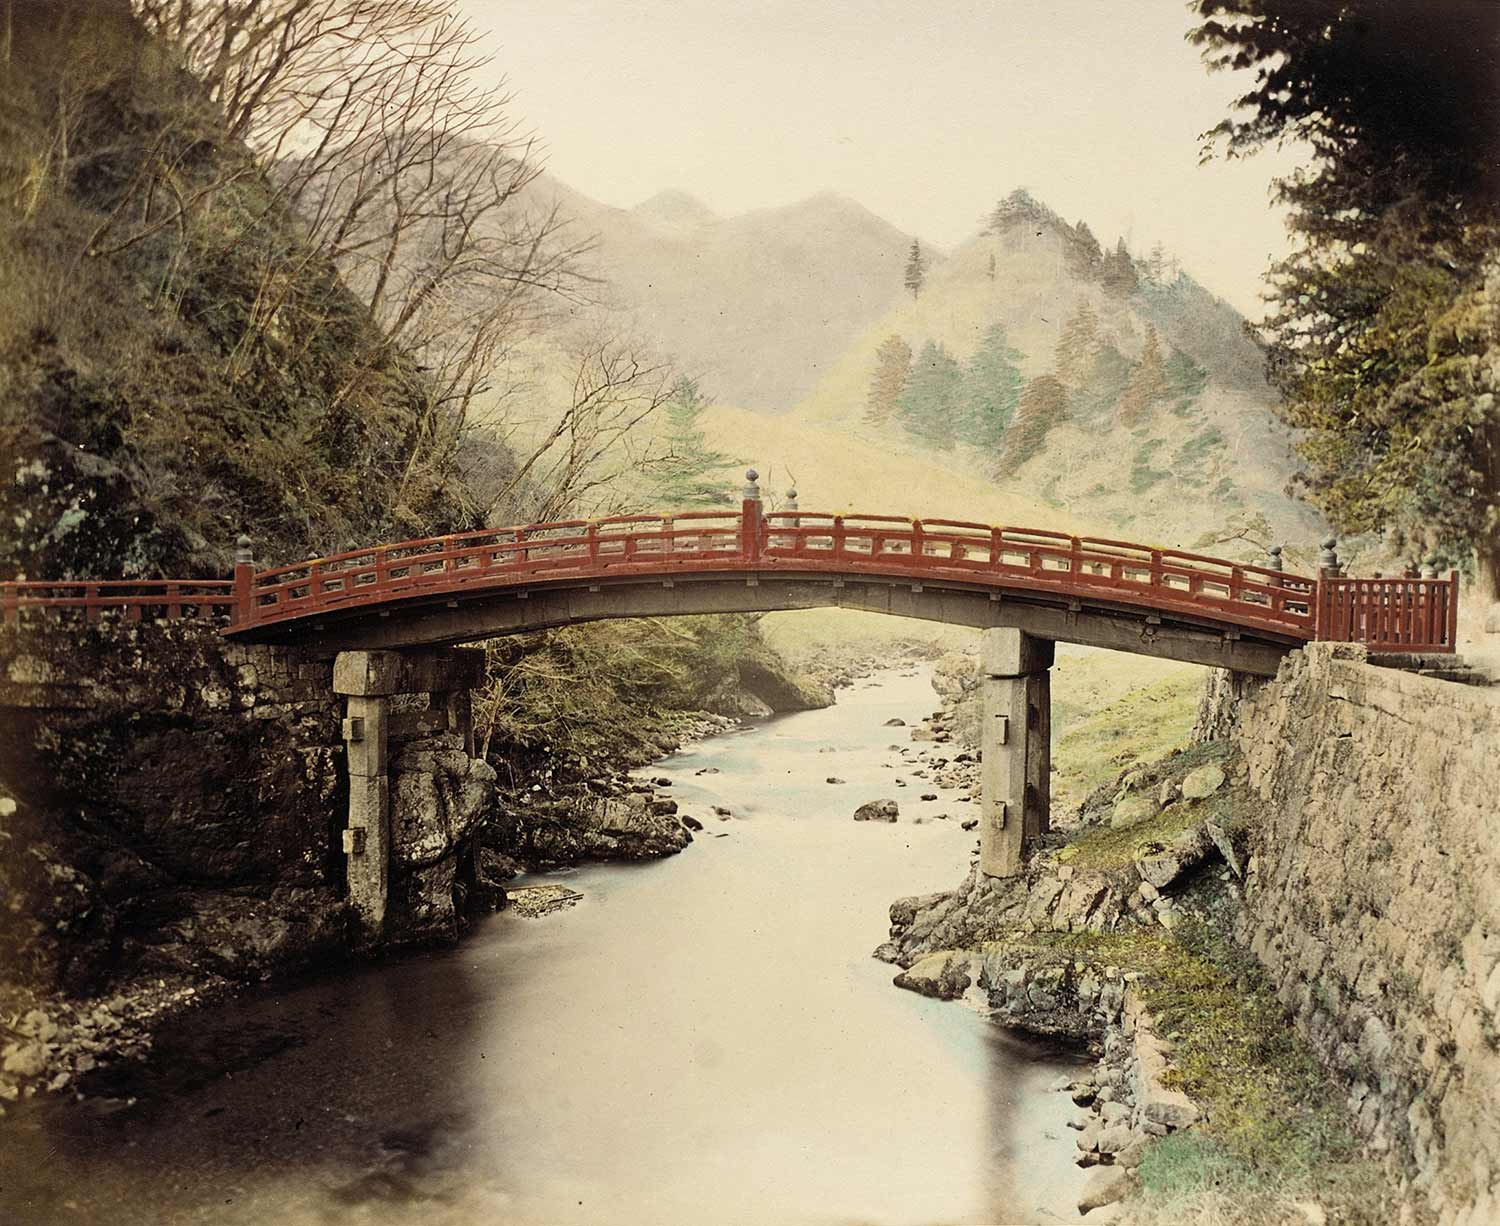 sacred bridge over a river